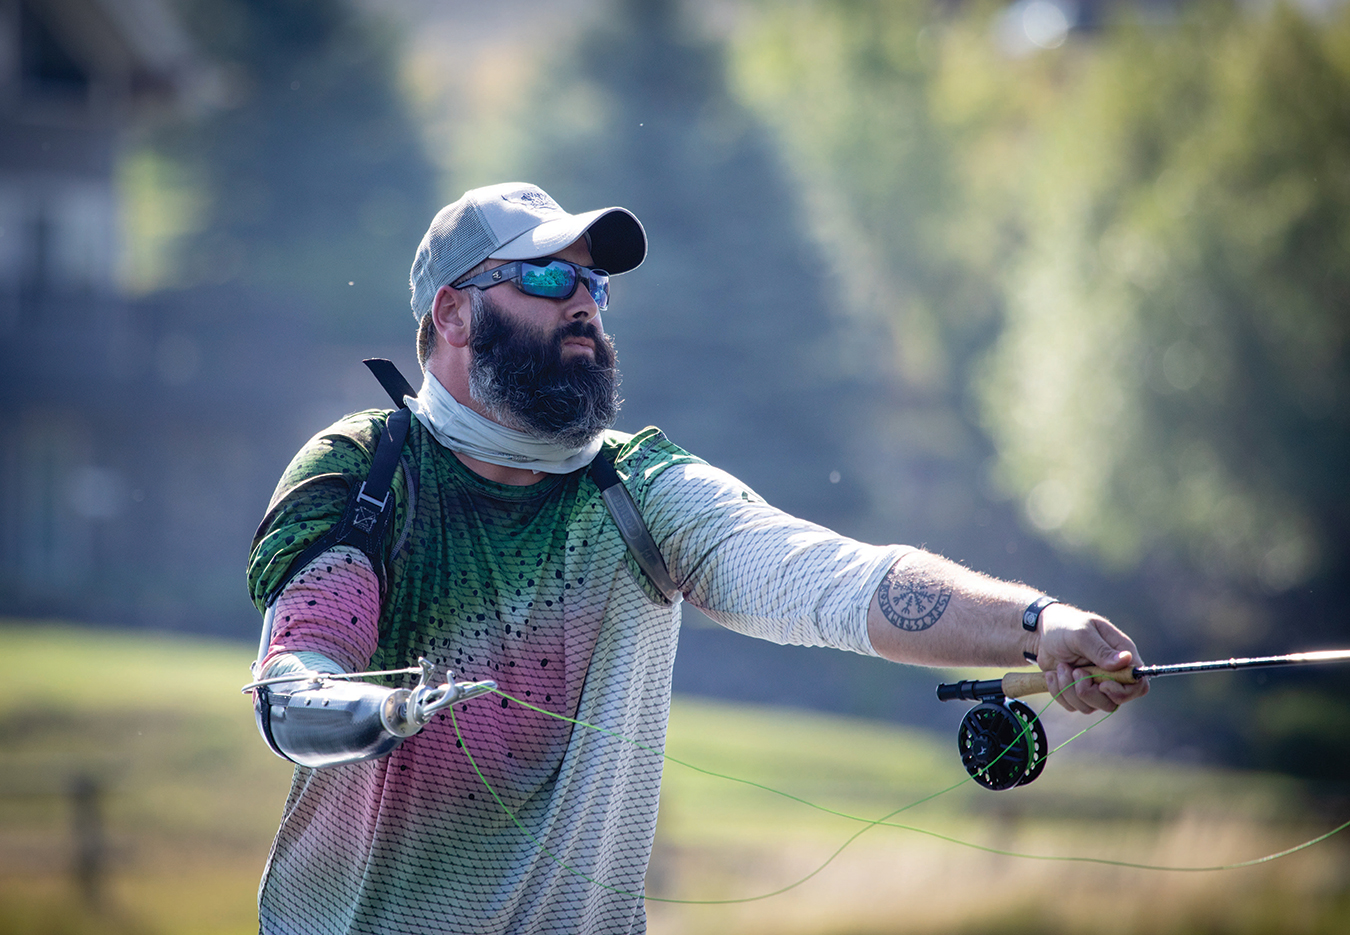 JOSHUA MCCART, AN ARMY VETERAN WOUNDED IN COMBAT, CASTS FOR TROUT ON MONTANA'S YELLOWSTONE RIVER.